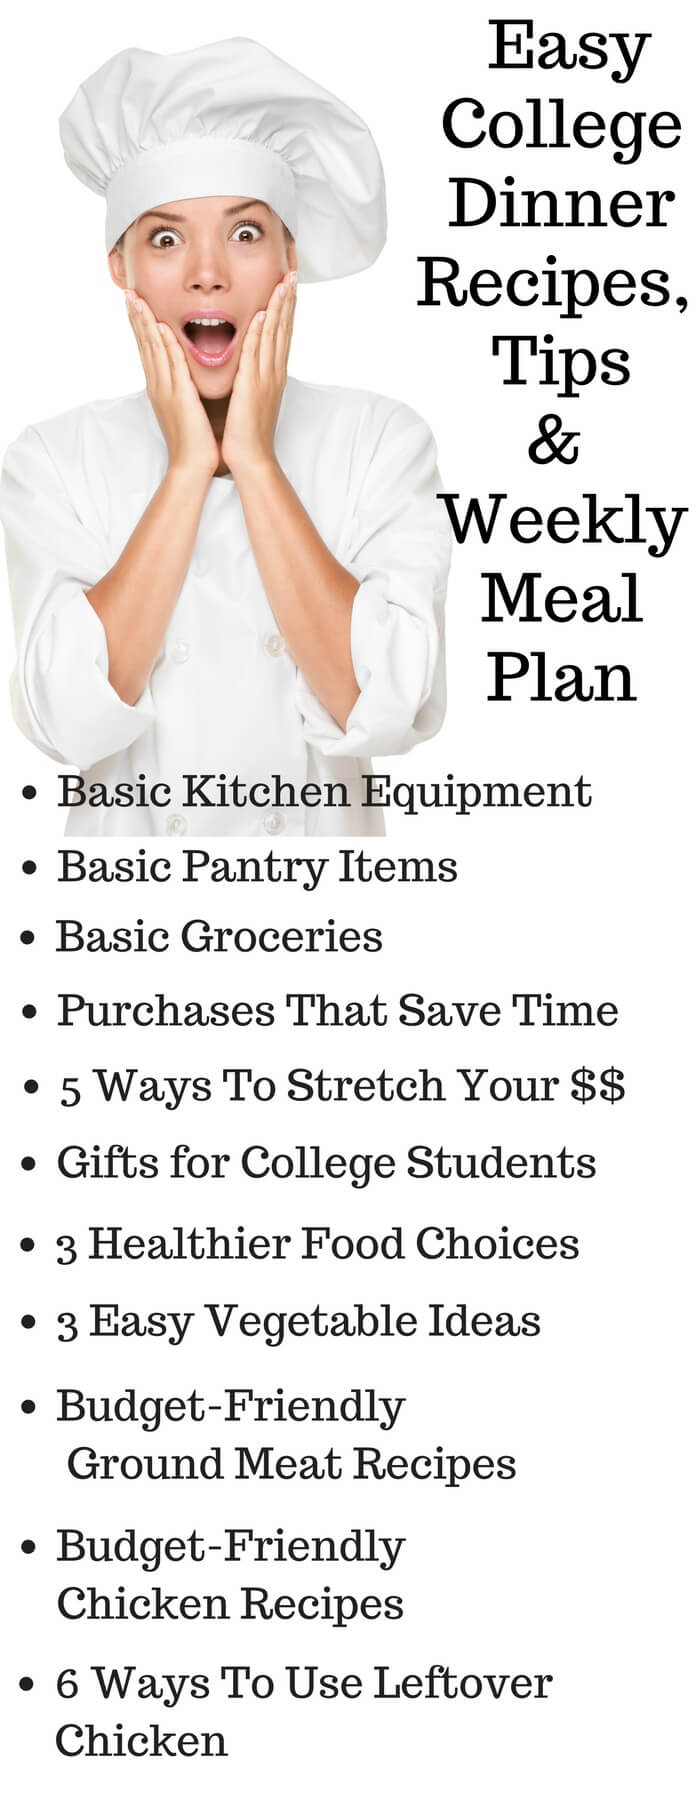 Easy College Dinner Recipes , Tips and Weekly Meal Plan - easy dinner recipes for college students, including lots of tips for budget-friendly, time-saving meals. Free printable weekly dinner plan, shopping list and recipes ~ https://jeanetteshealthyliving.com